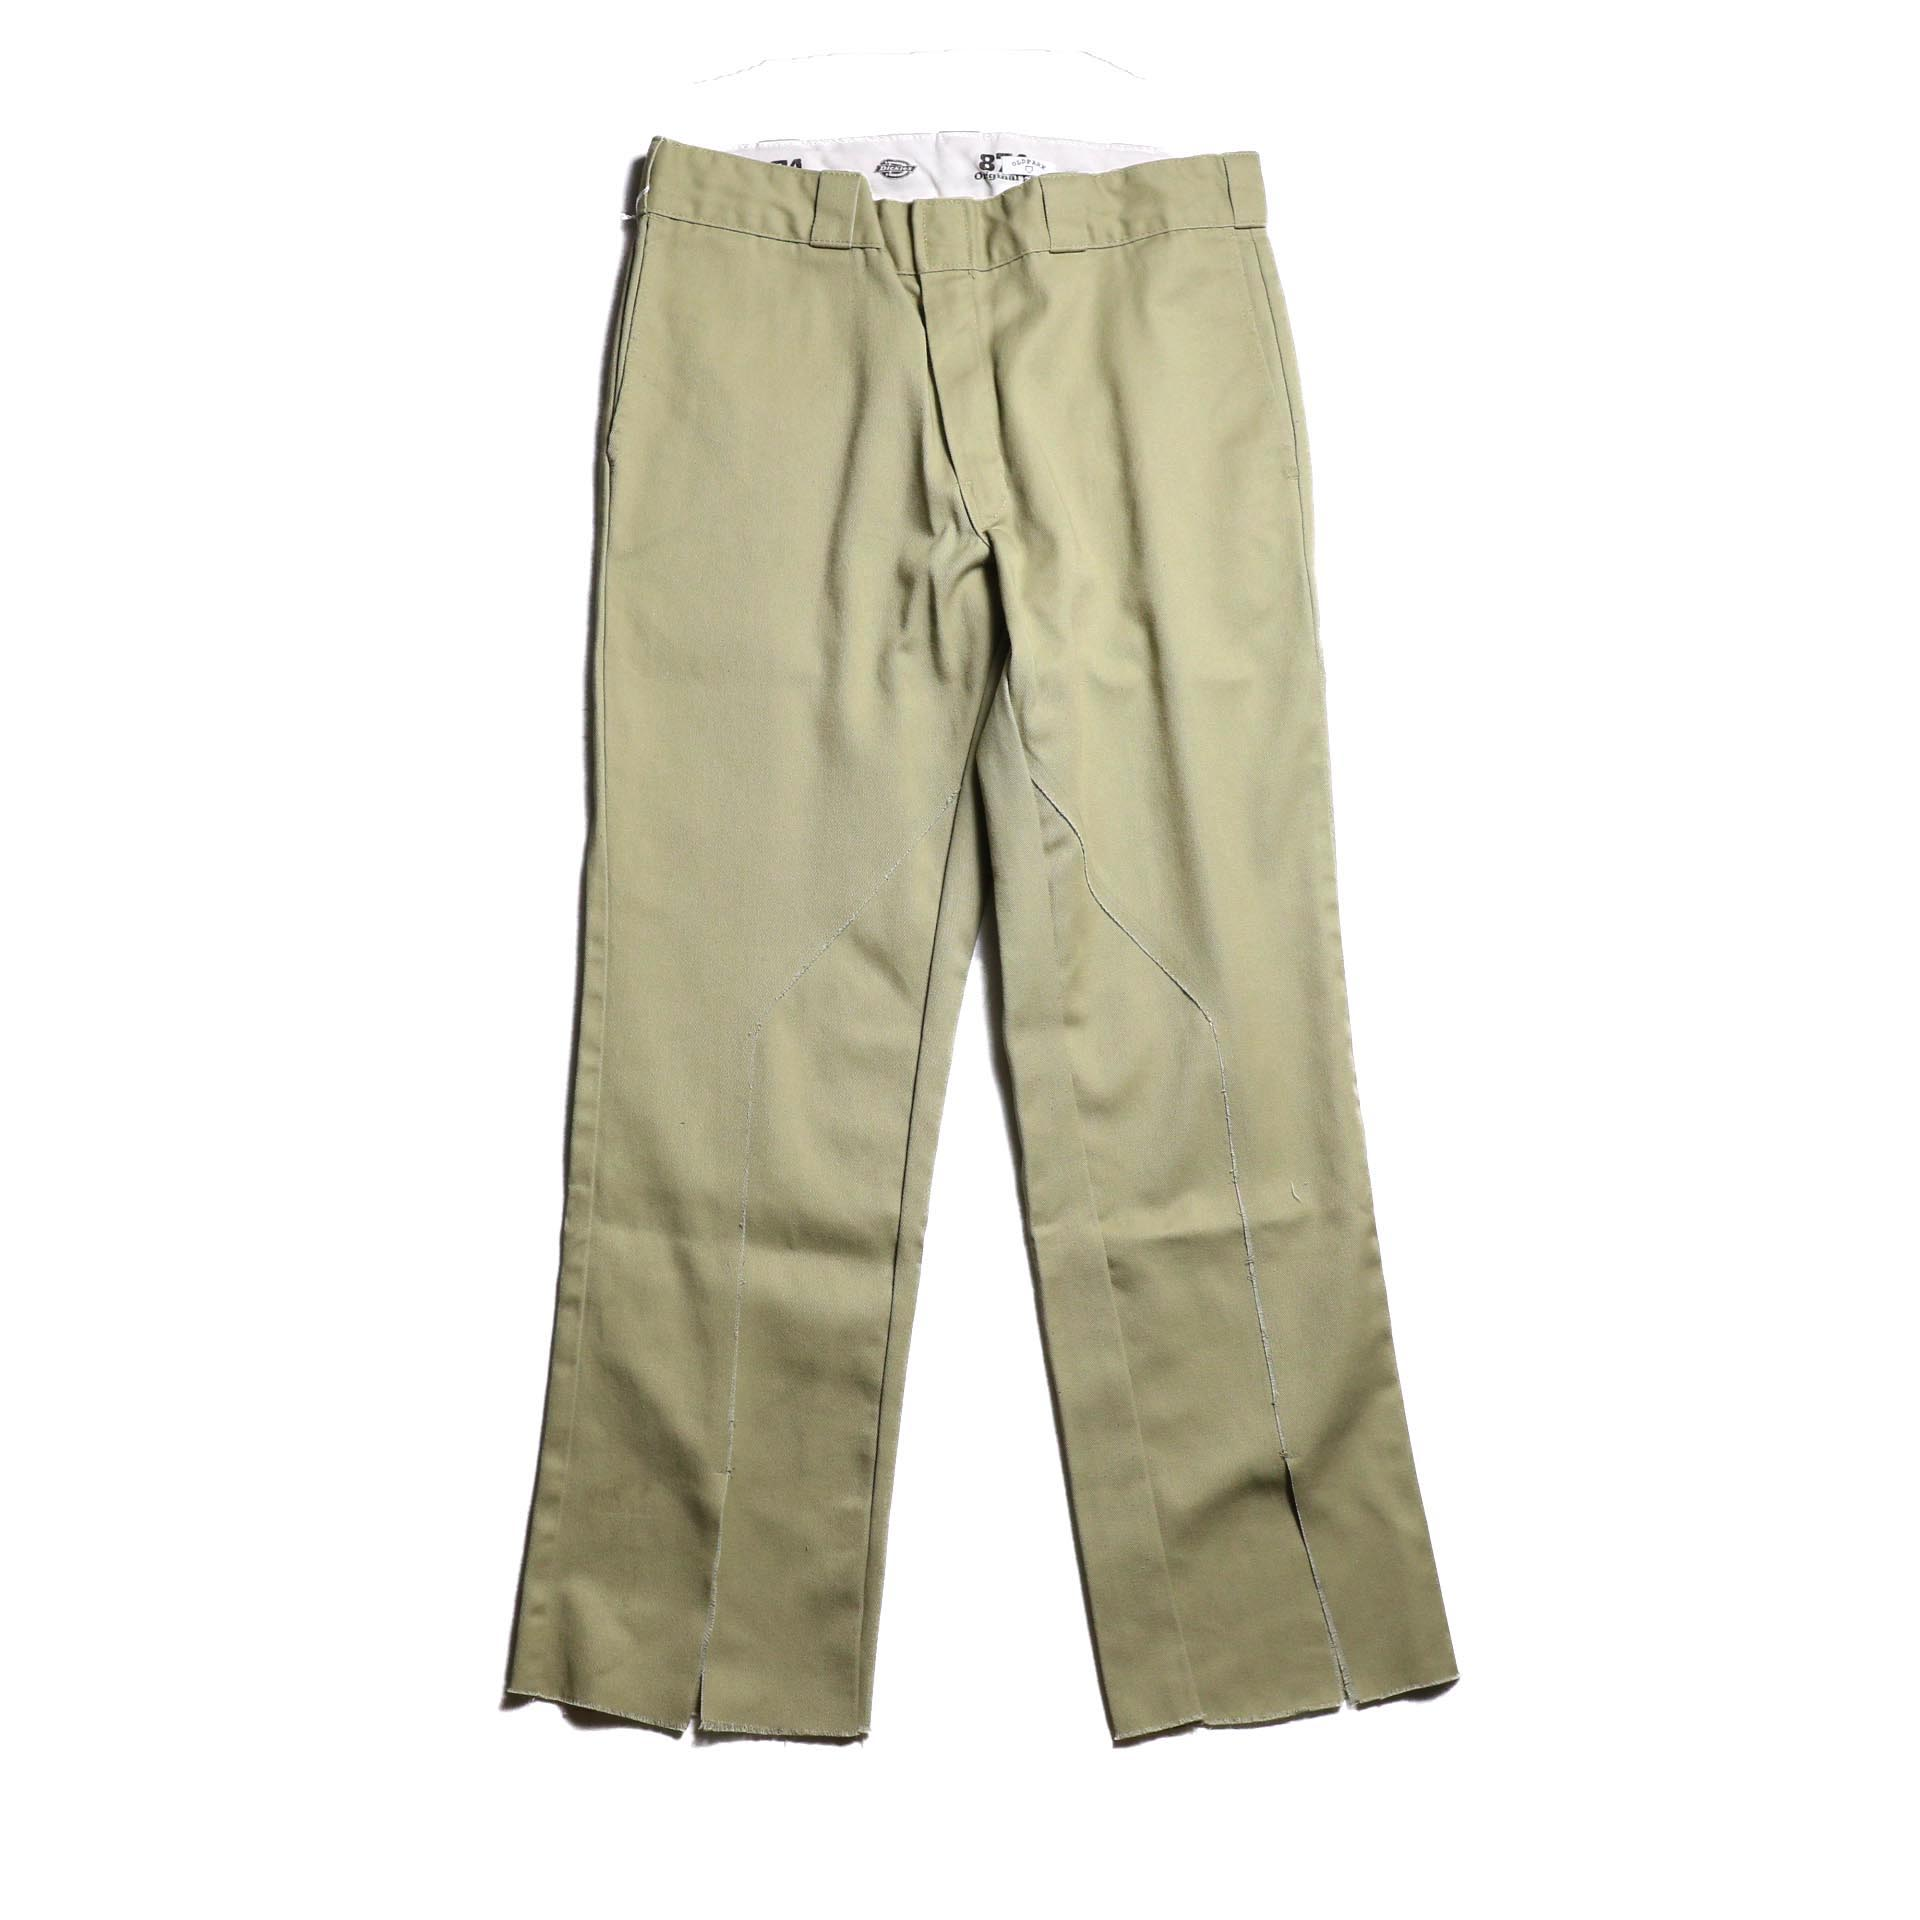 "OLD PARK / Slit Pants ""Dickies"" -Beige (Lsize)"